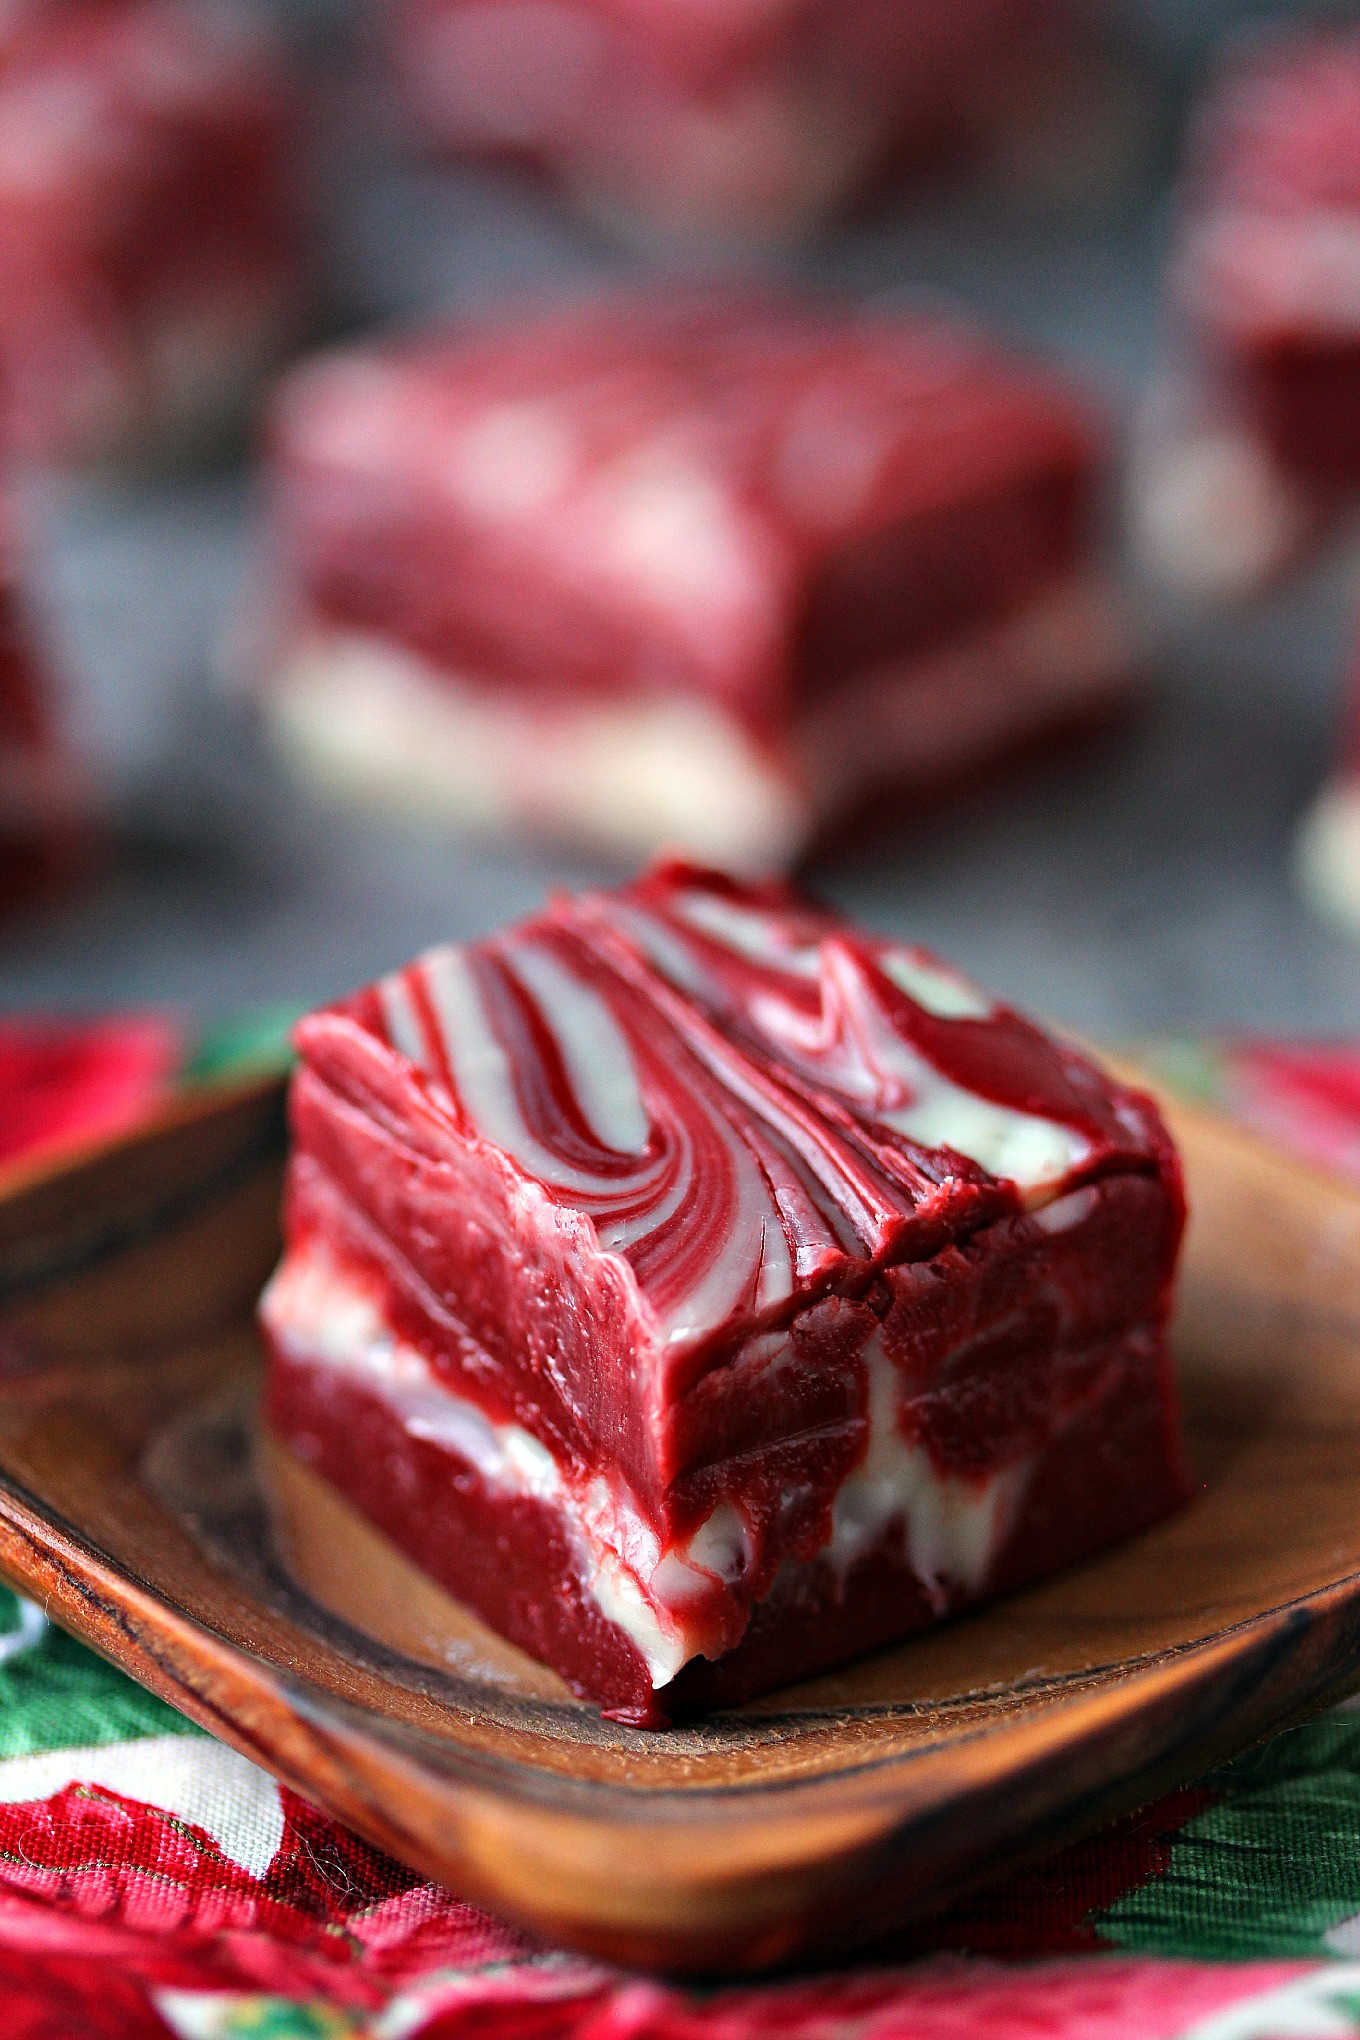 Christmas Swirl Fudge  Red Velvet Swirl Fudge 4 Ingre nts